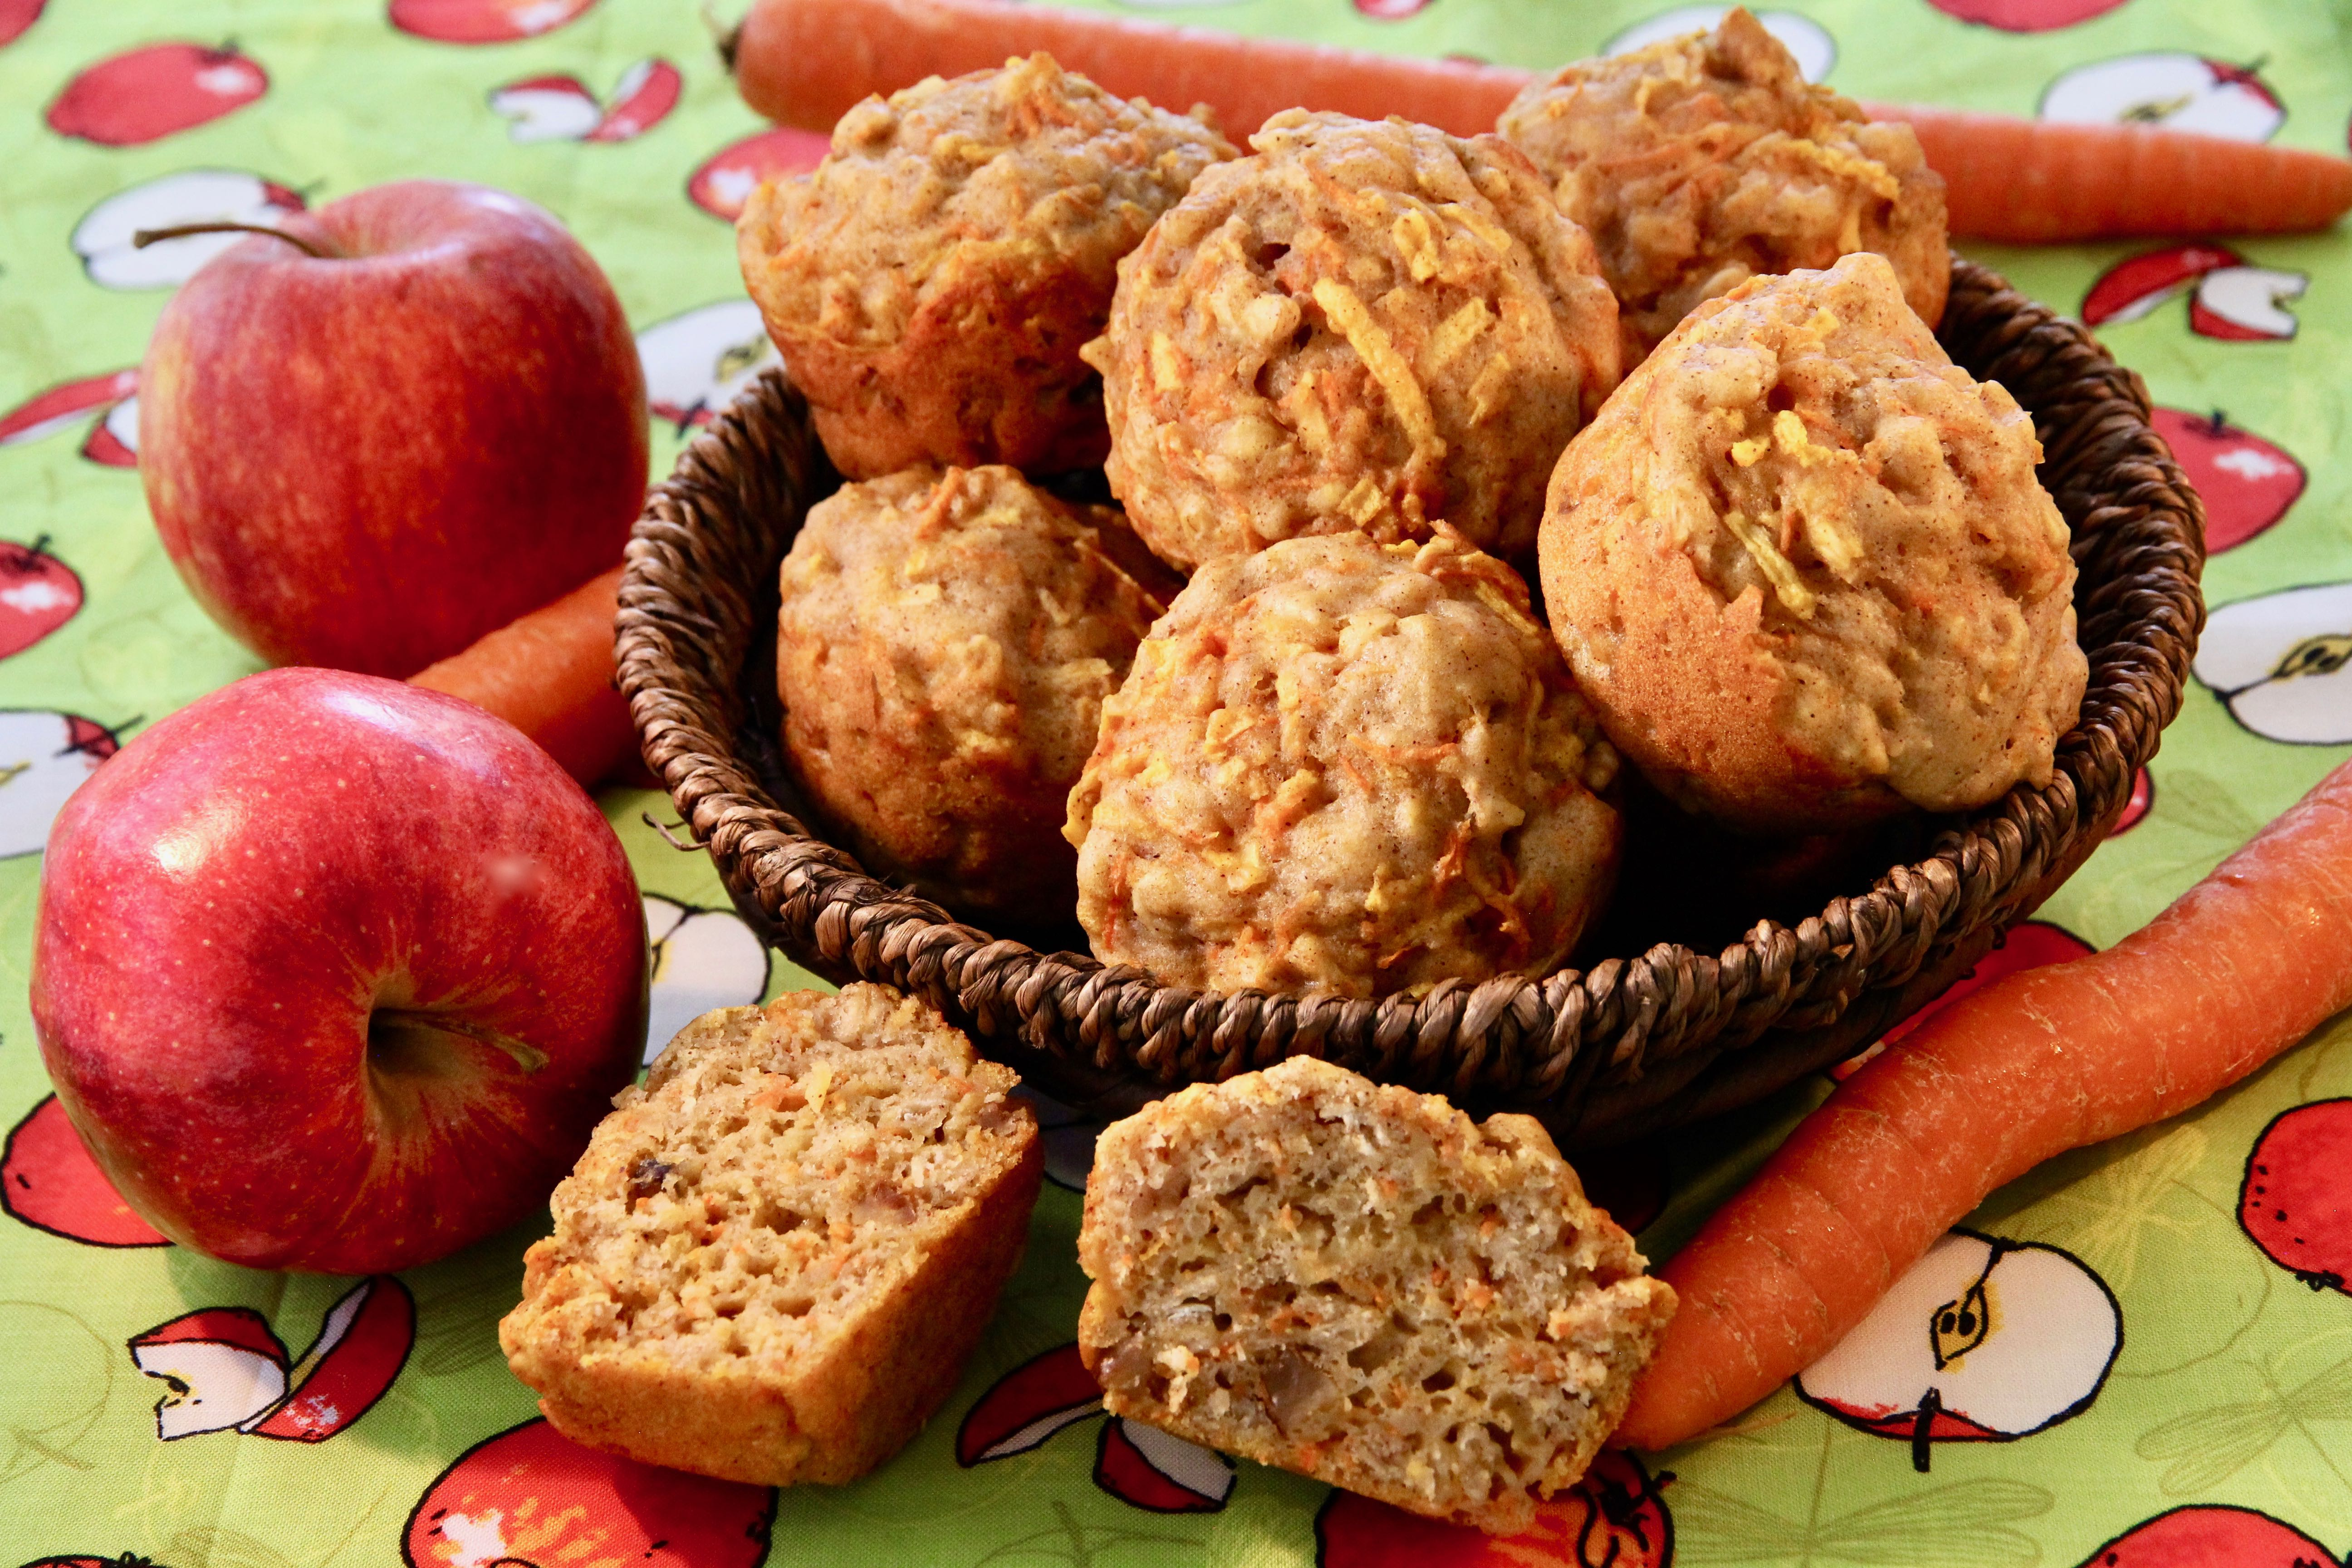 Carrot-Apple Muffins